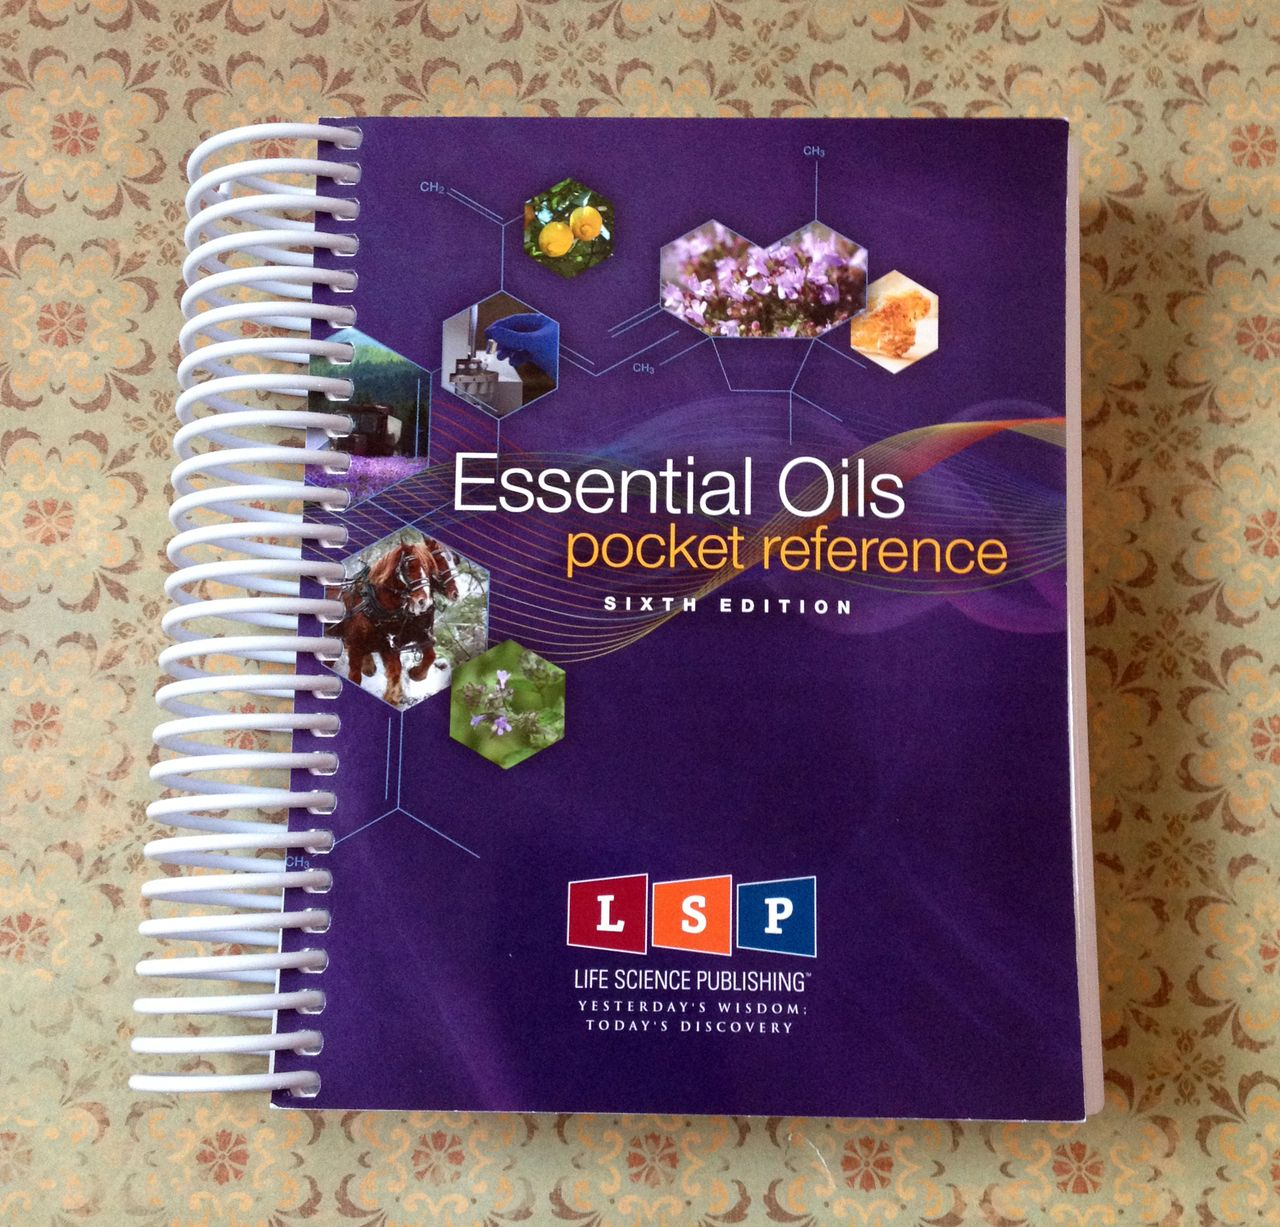 Essential Oils Pocket Reference 2017 6th Edition Spiral By Life Science Publishing